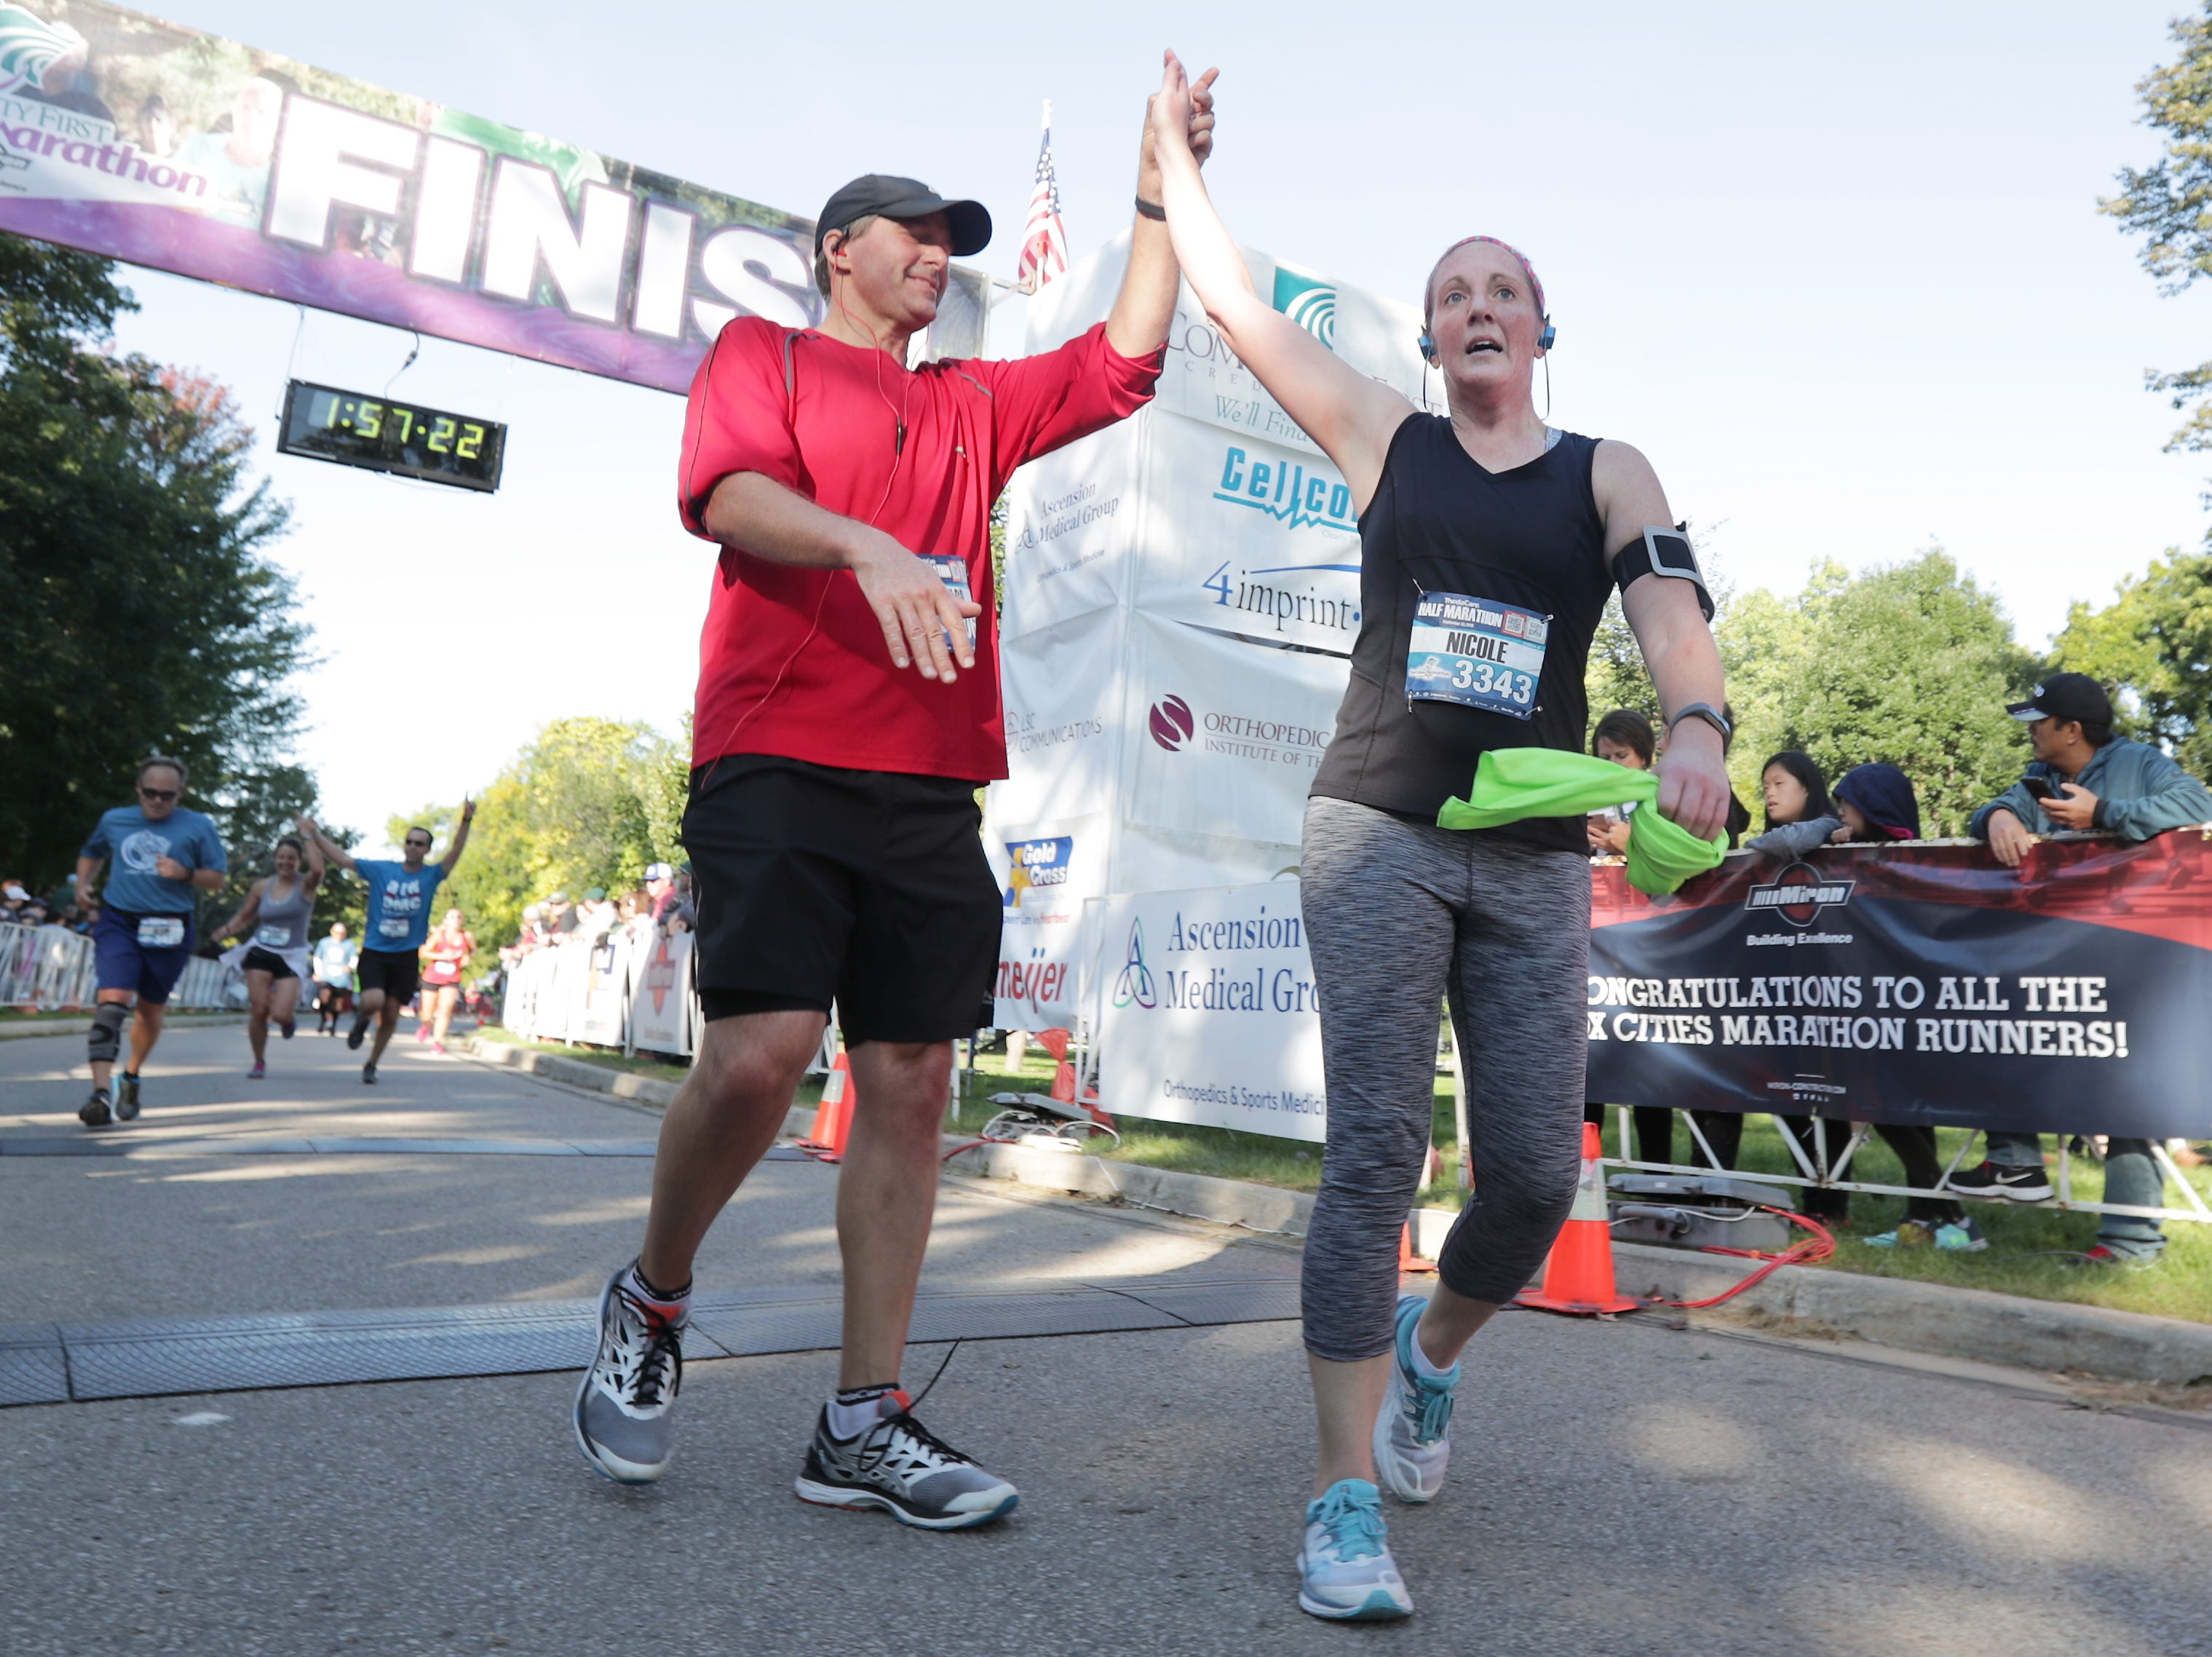 Richard Frost and Nicole Esterling cross the finish line in the half marathon event during the 28th annual Community First Fox Cities Marathon on Sunday, September 23, 2018, in Neenah Wis. Wm. Glasheen/USA TODAY NETWORK-Wisconsin.